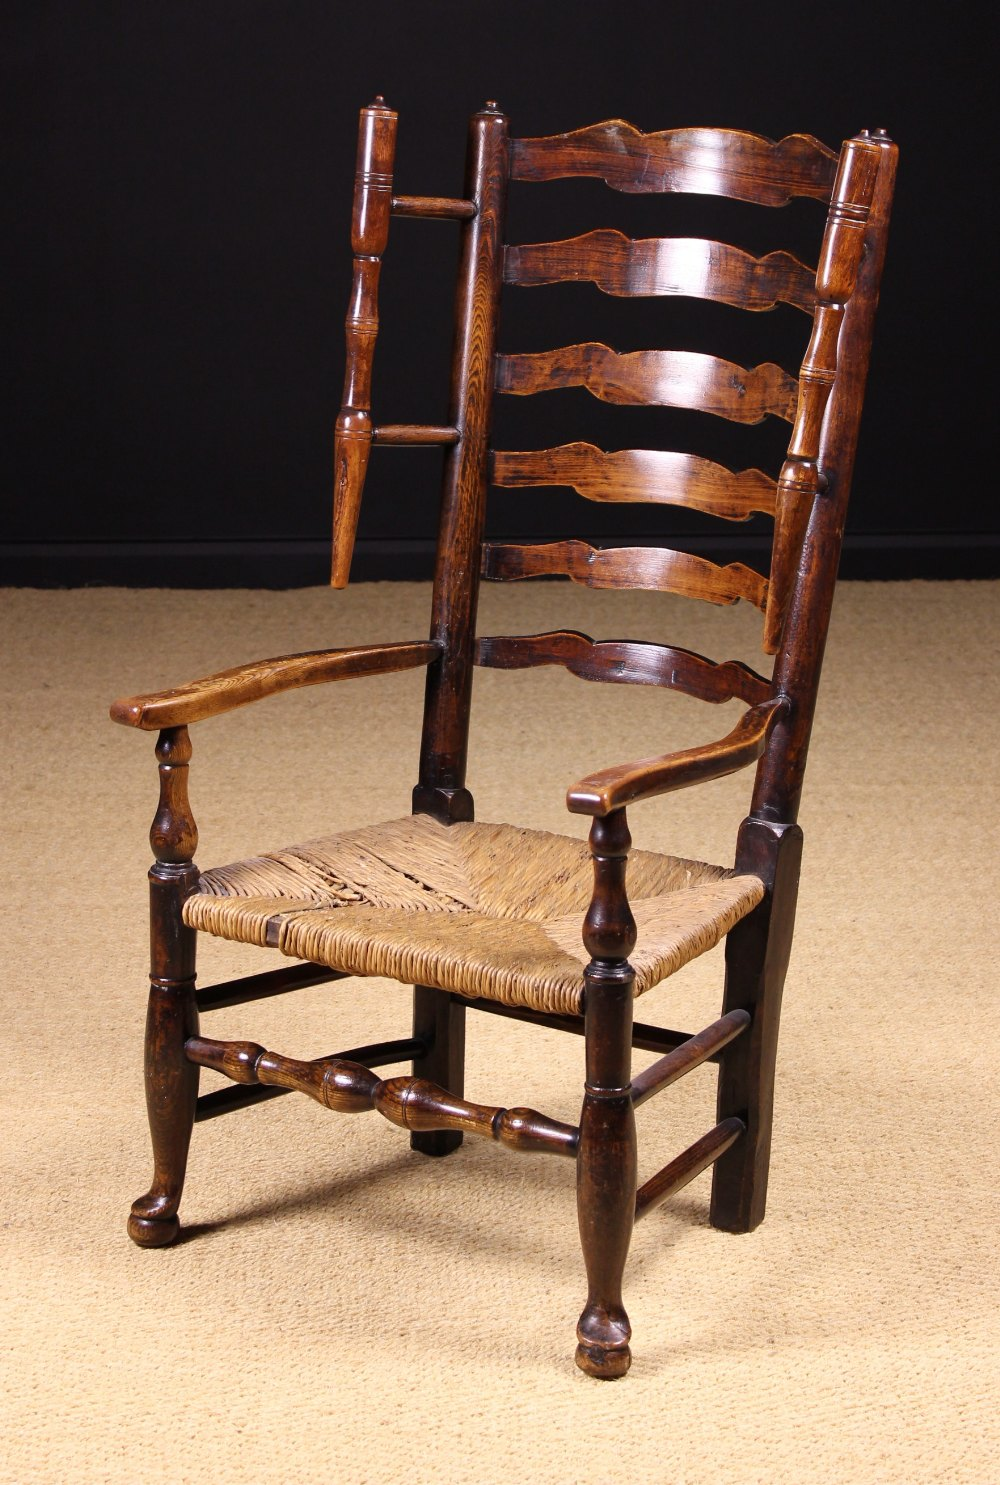 Lot 53 - A Fine Late 18th/Early 19th Century Lancashire Wavy Ladder-back Winged Armchair with rush seat.